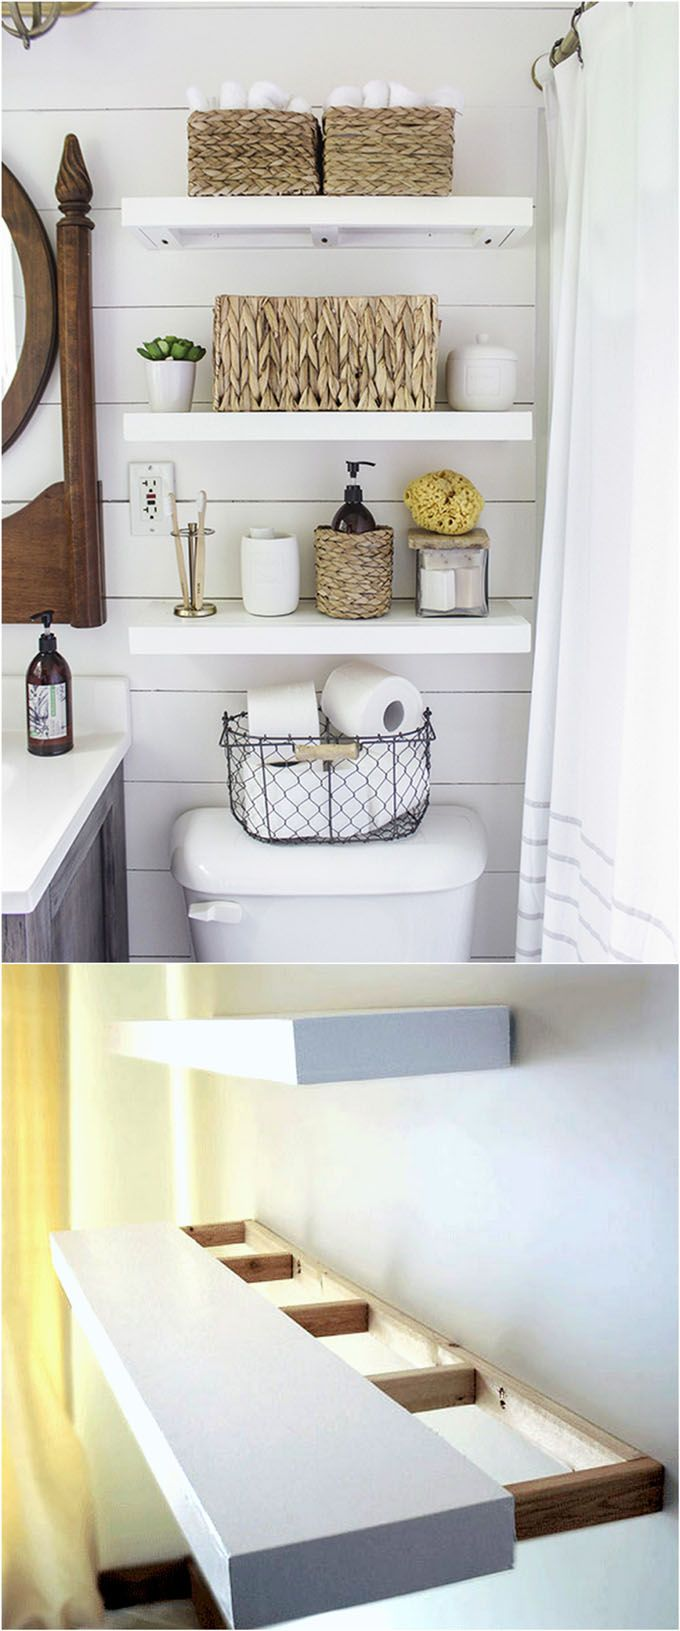 easy and stylish diy floating shelves wall hometalk for kitchen walls tutorials building beautiful check out all the gorgeous brackets supports finishes design inspirations shelf